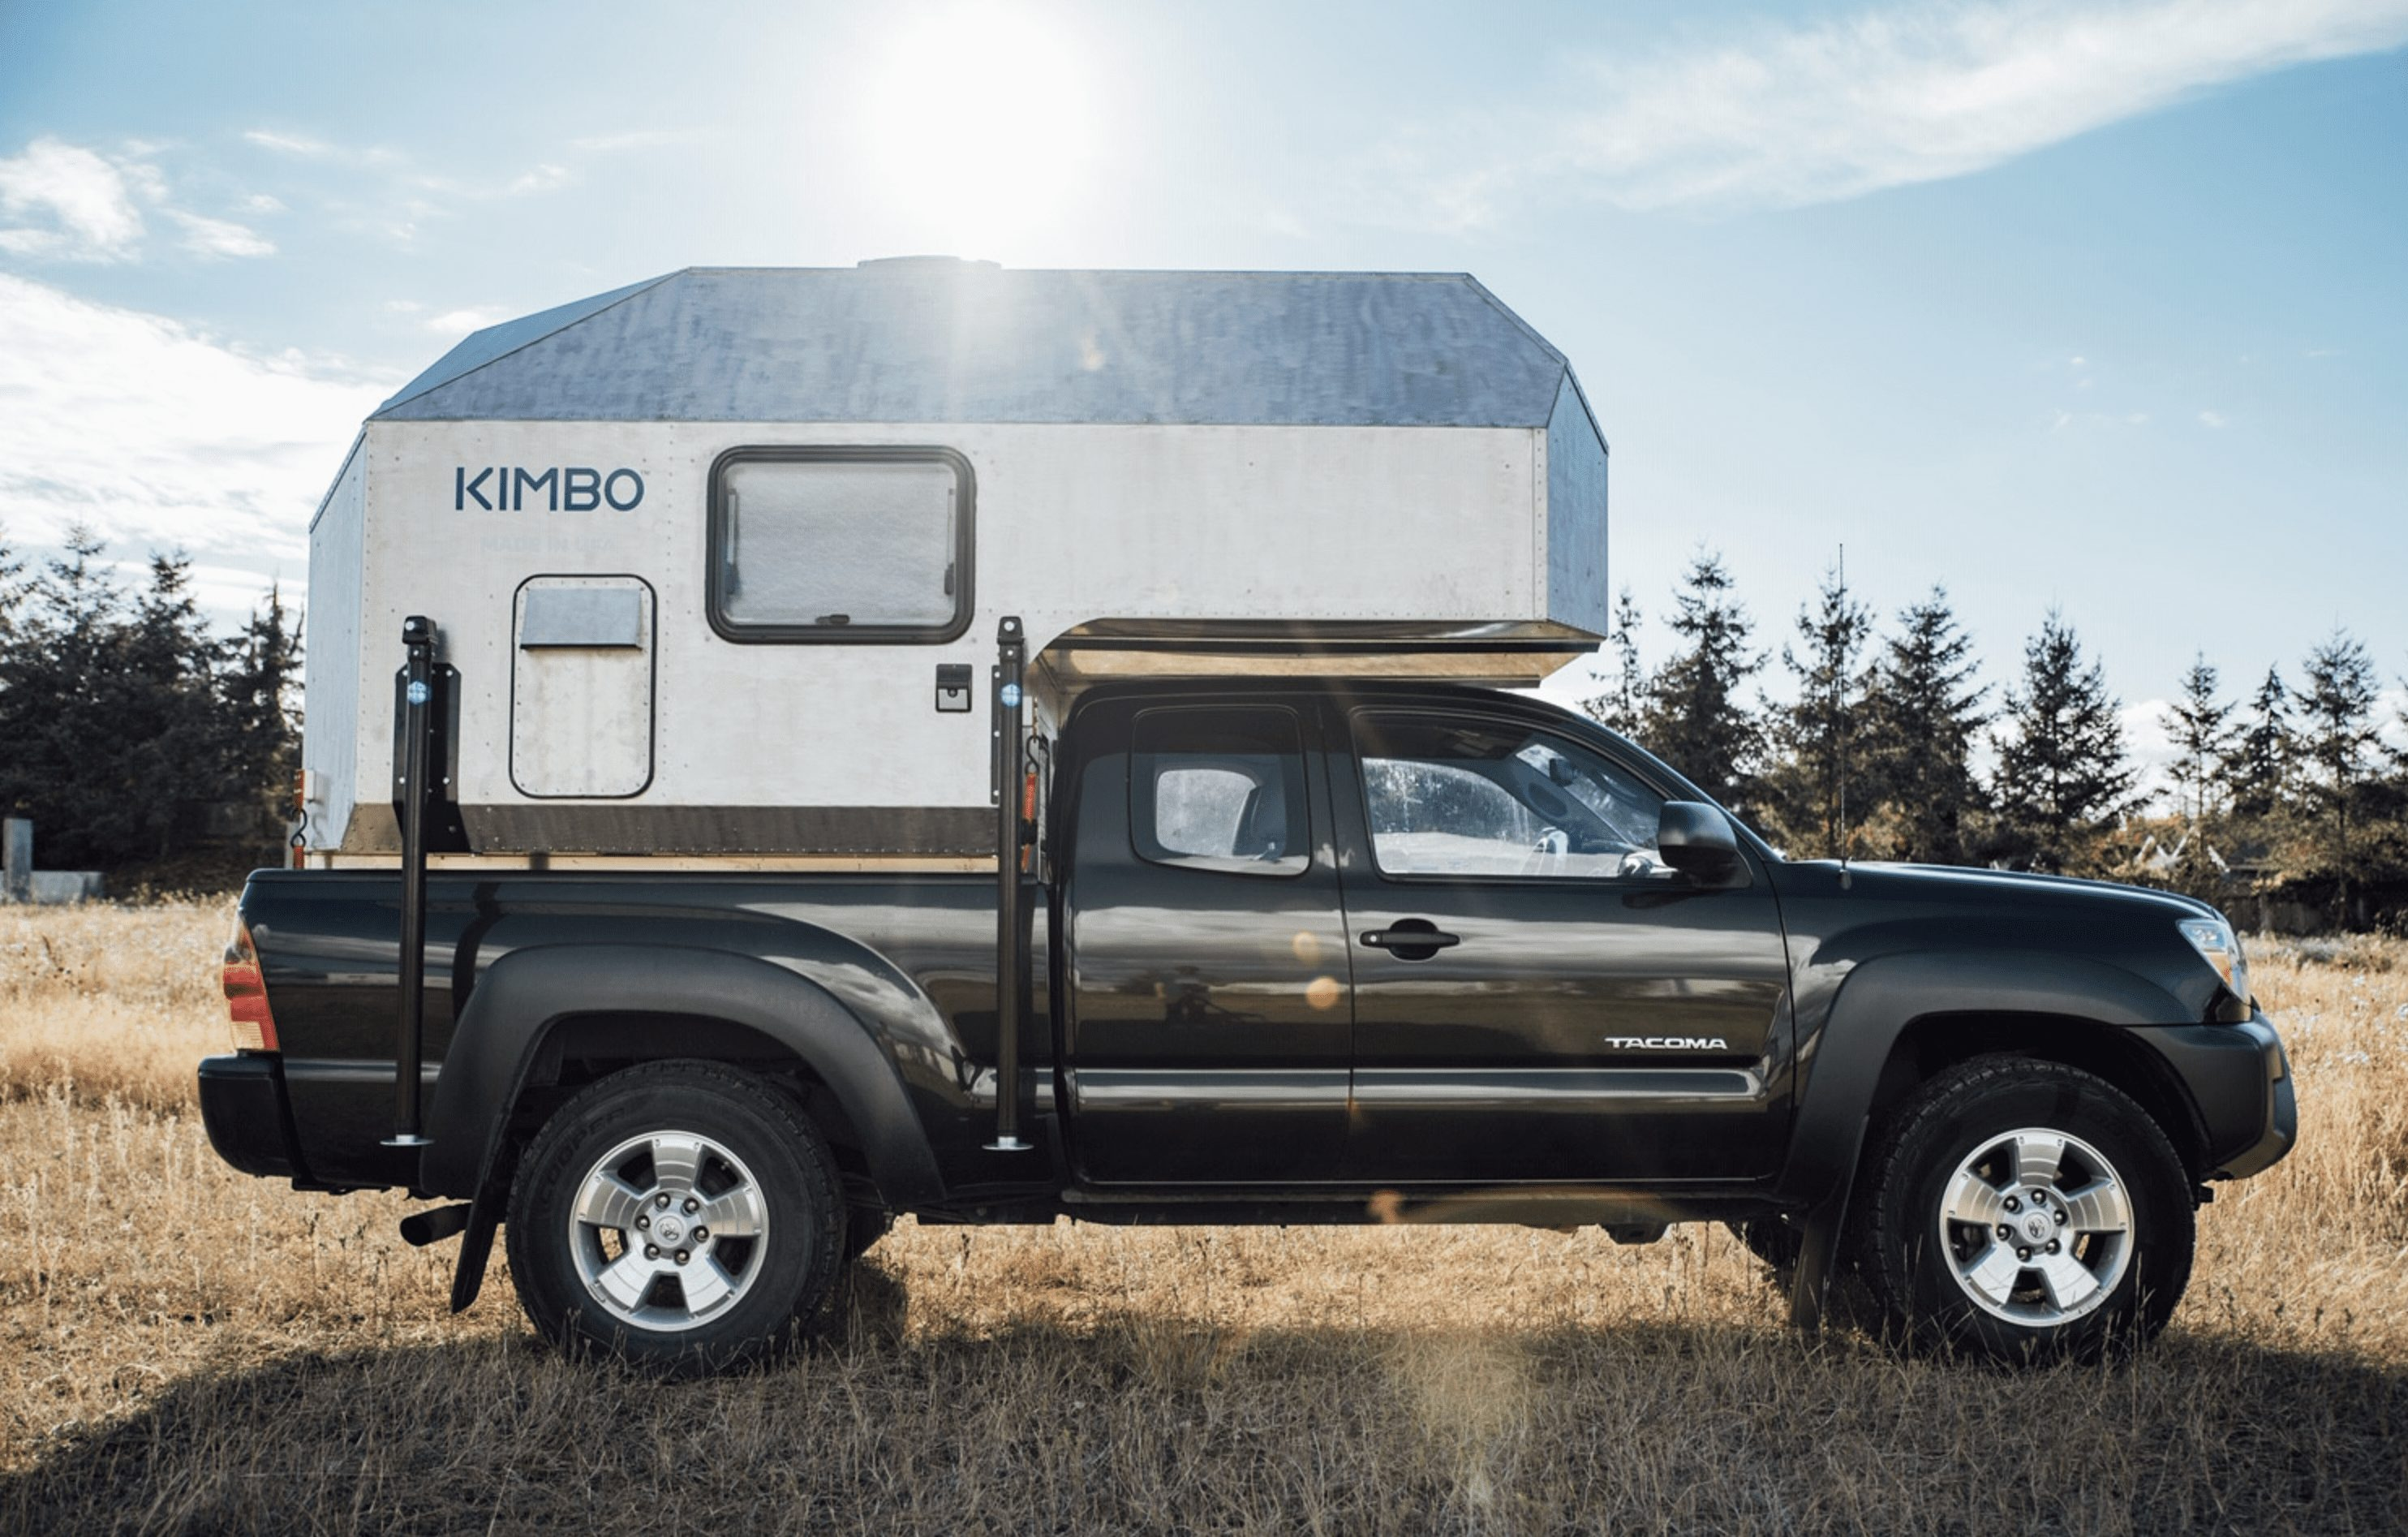 What Is a Kimbo Camper?